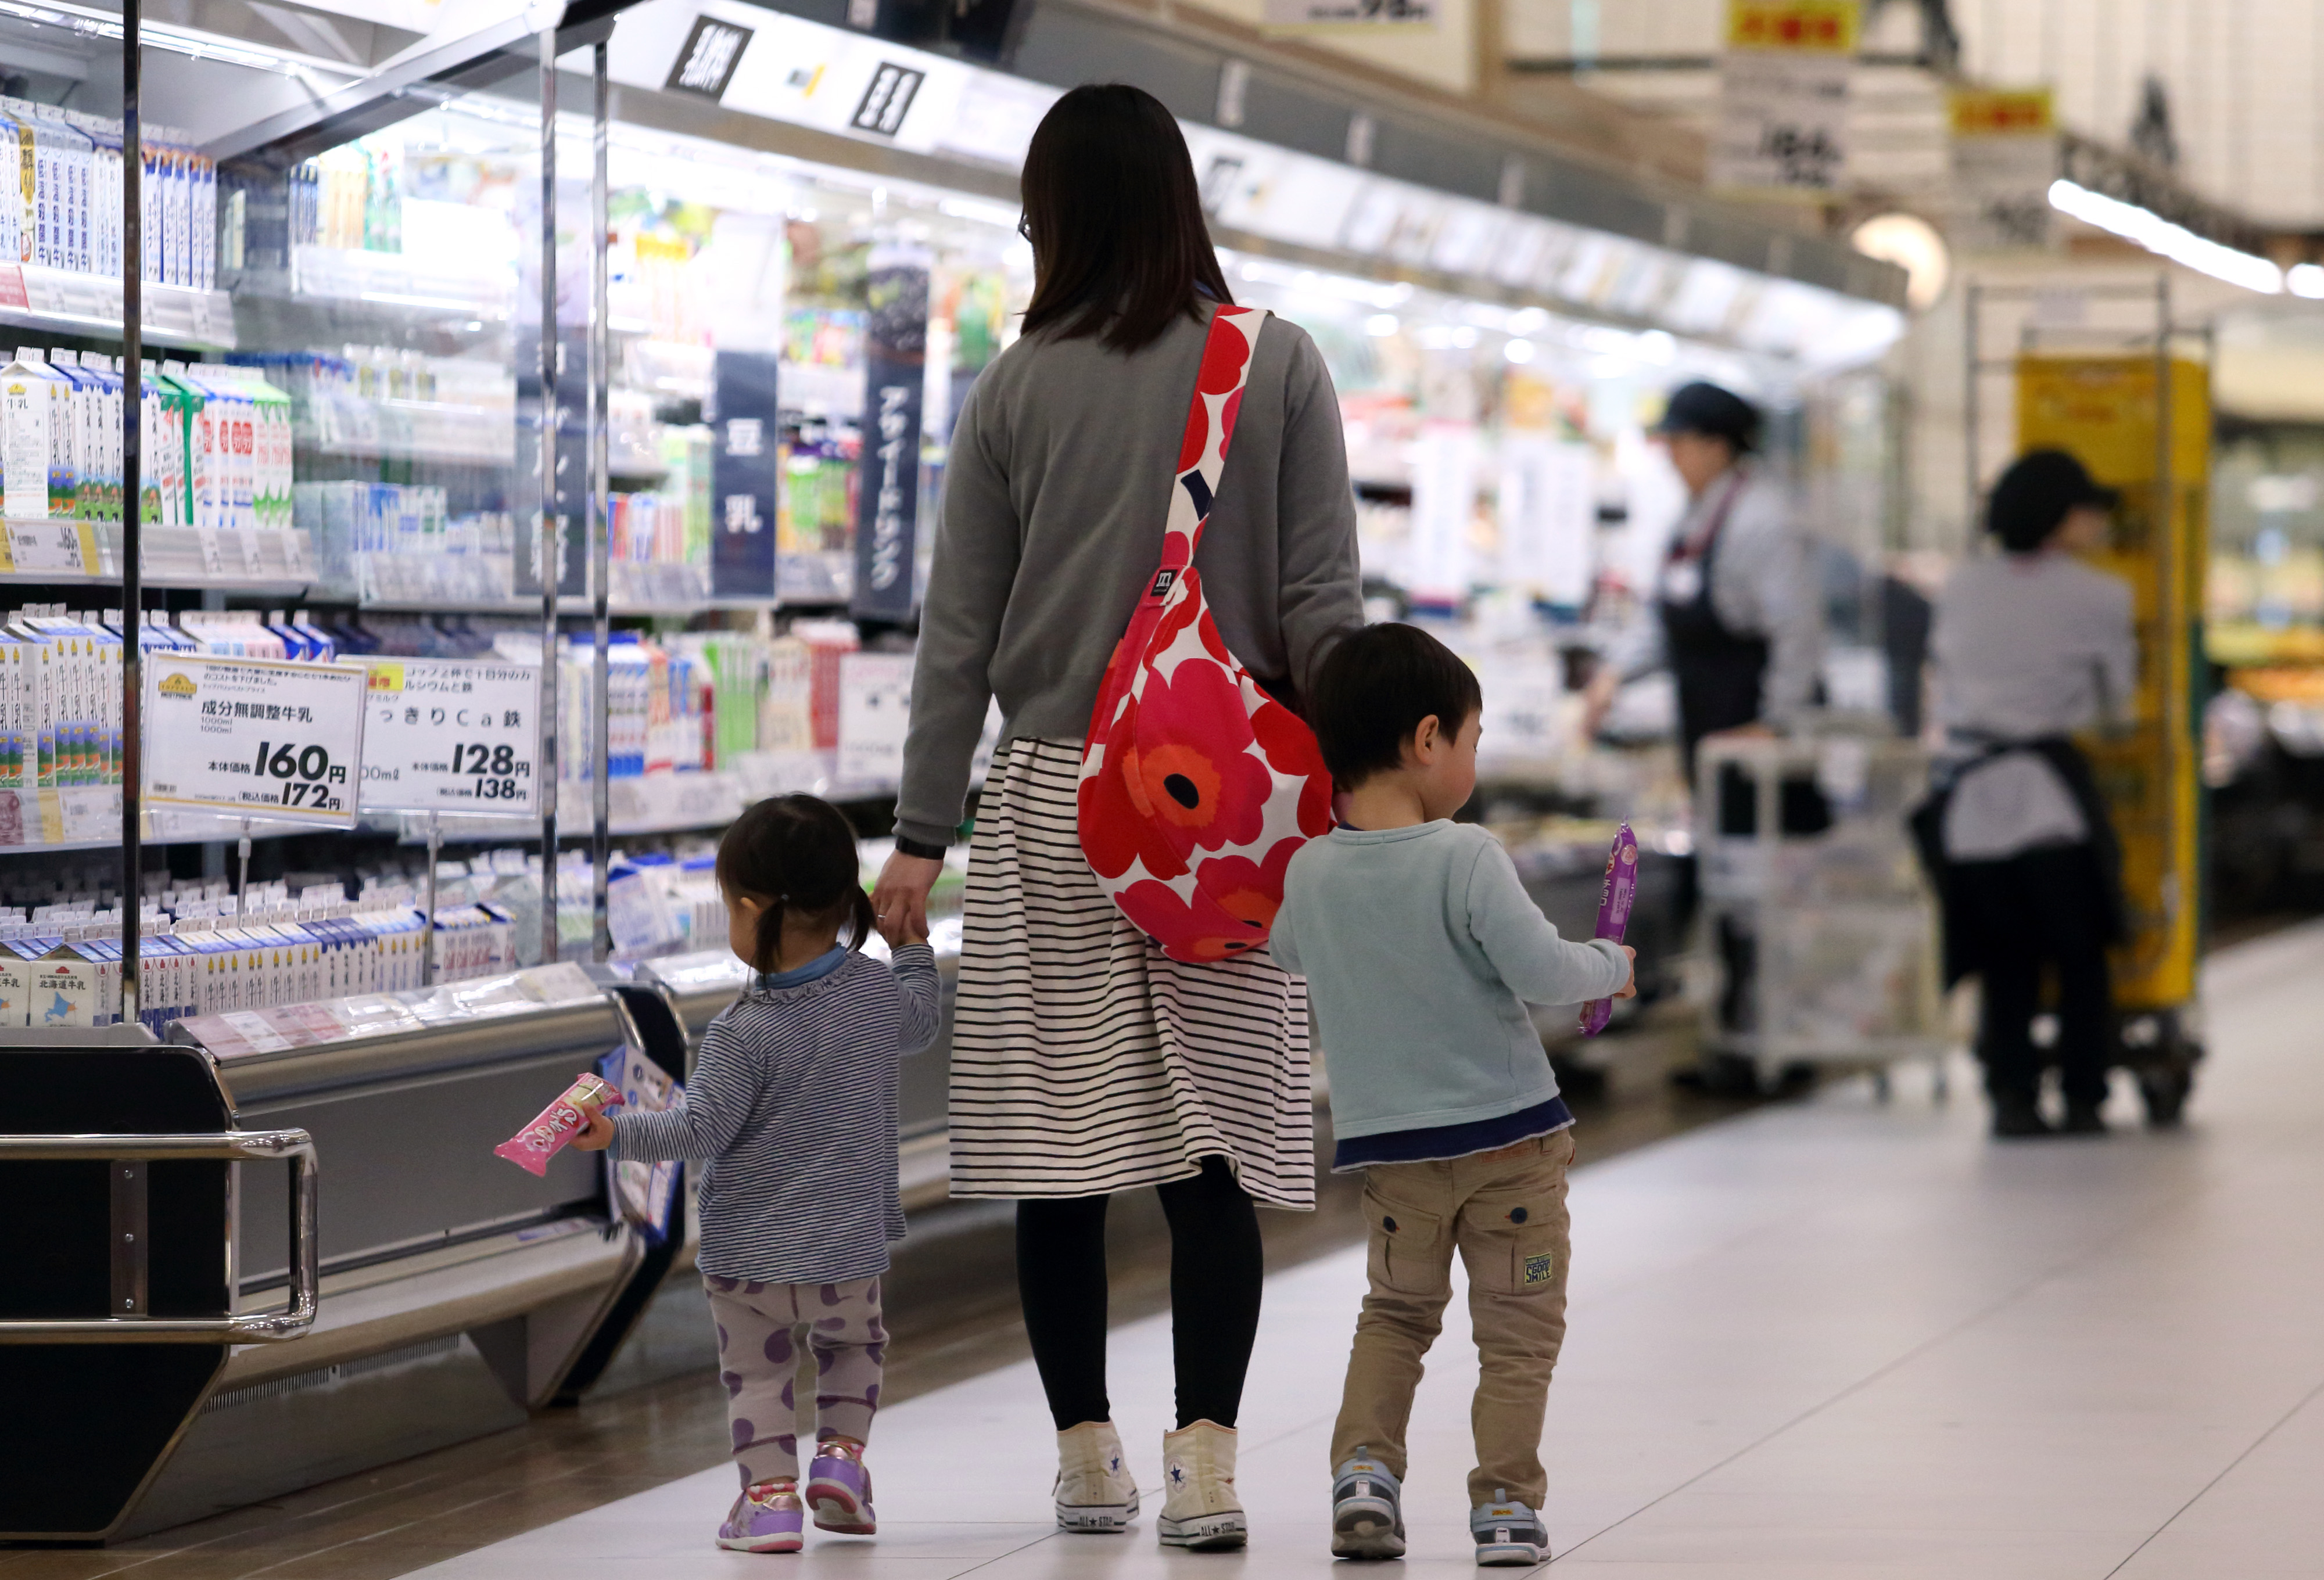 A mother and her children walk through an Aeon Co. supermarket in Chiba, Japan, on Tuesday, April 1, 2014. Japan's economy will probably withstand a sales tax increase that takes effect today as Prime Minister Shinzo Abe prepares economic stimulus measures and companies raise wages, the country's new bank lobby chief Nobuyuki Hirano said. Photographer: Tomohiro Ohsumi/Bloomberg